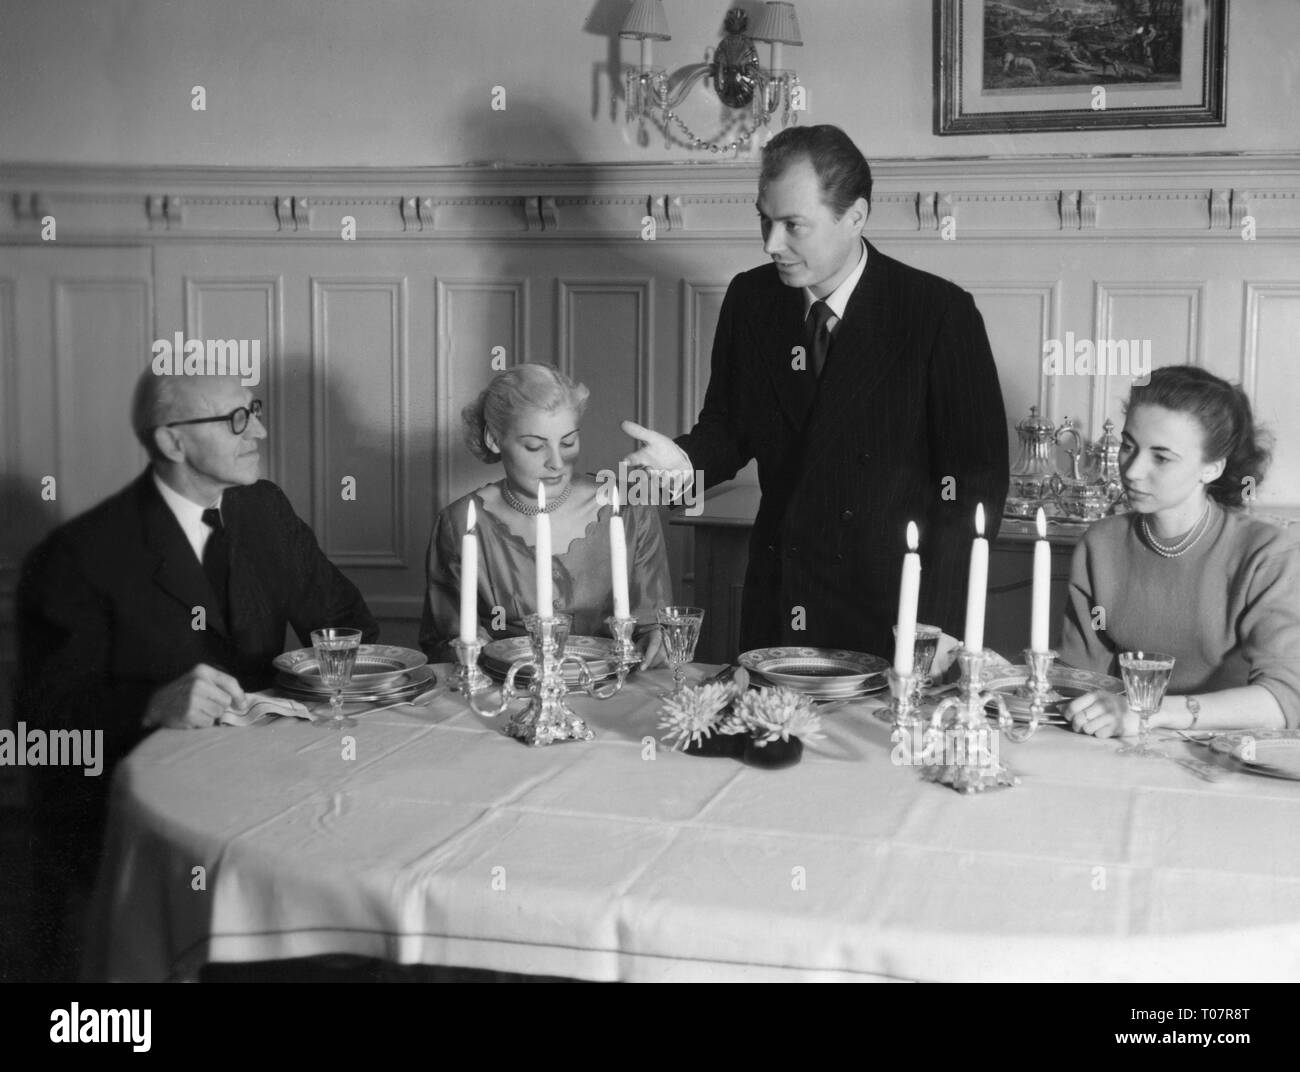 people, society, rules of politeness, dinner, don't make a long speech while the meal already stands on the table, scene, 1950s, Additional-Rights-Clearance-Info-Not-Available - Stock Image